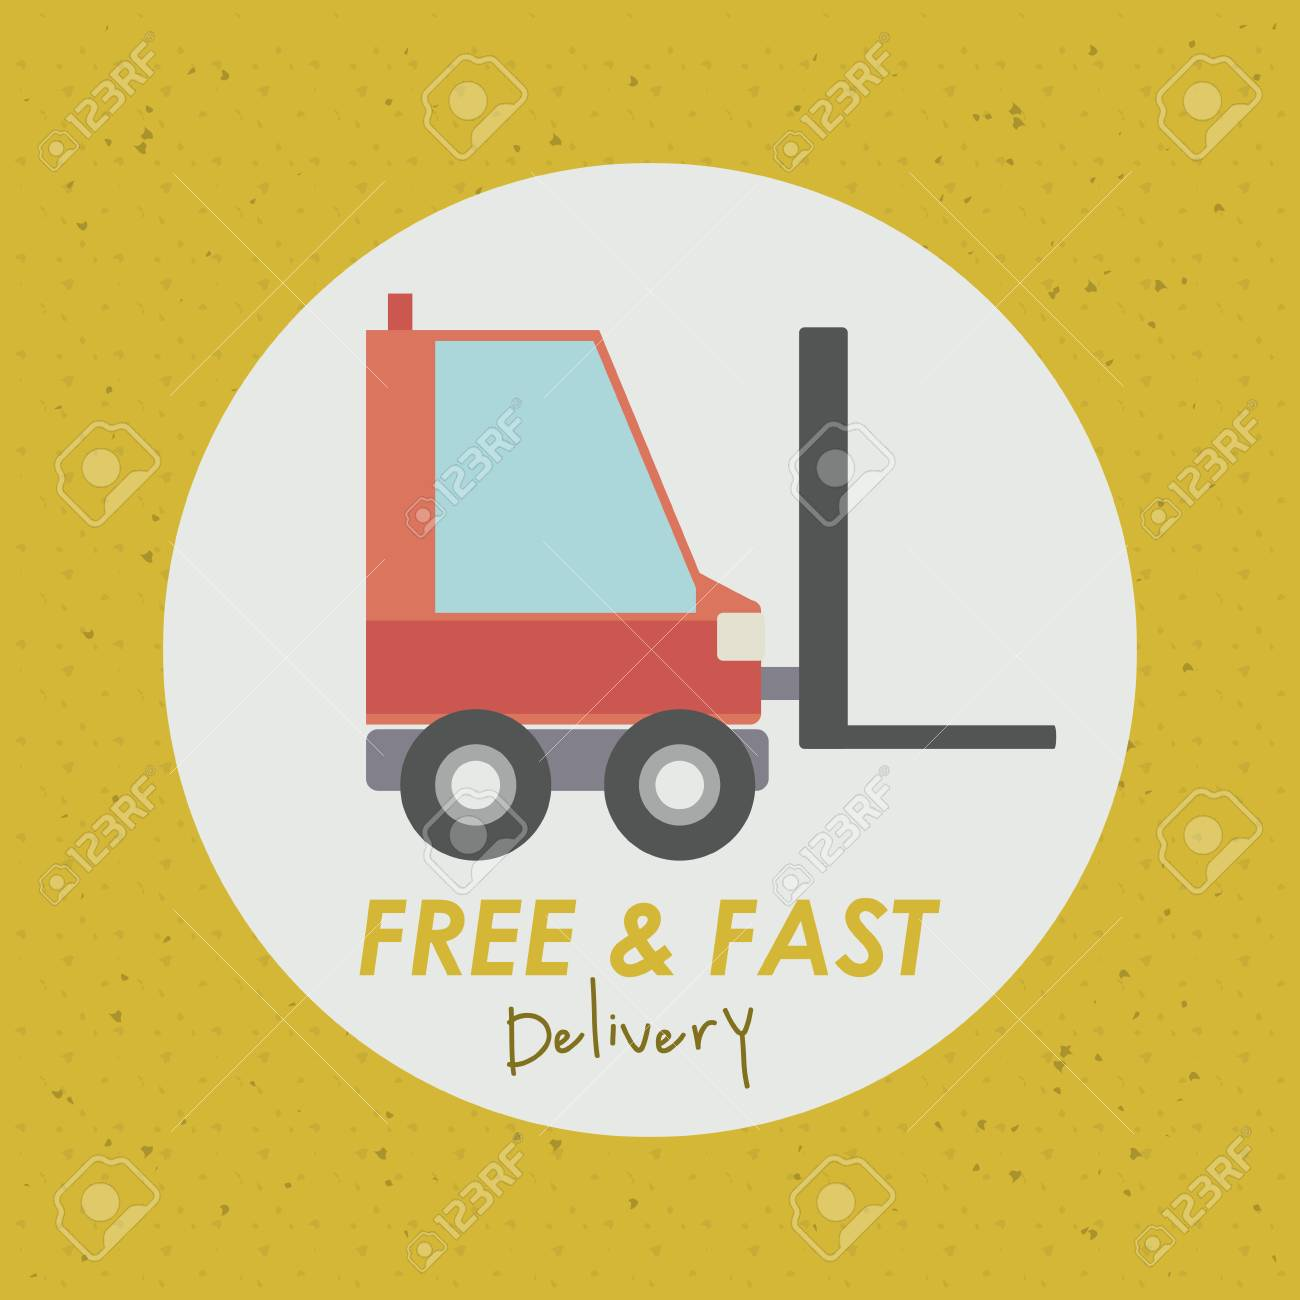 Delivery design over  background, vector illustration Stock Vector - 27175274